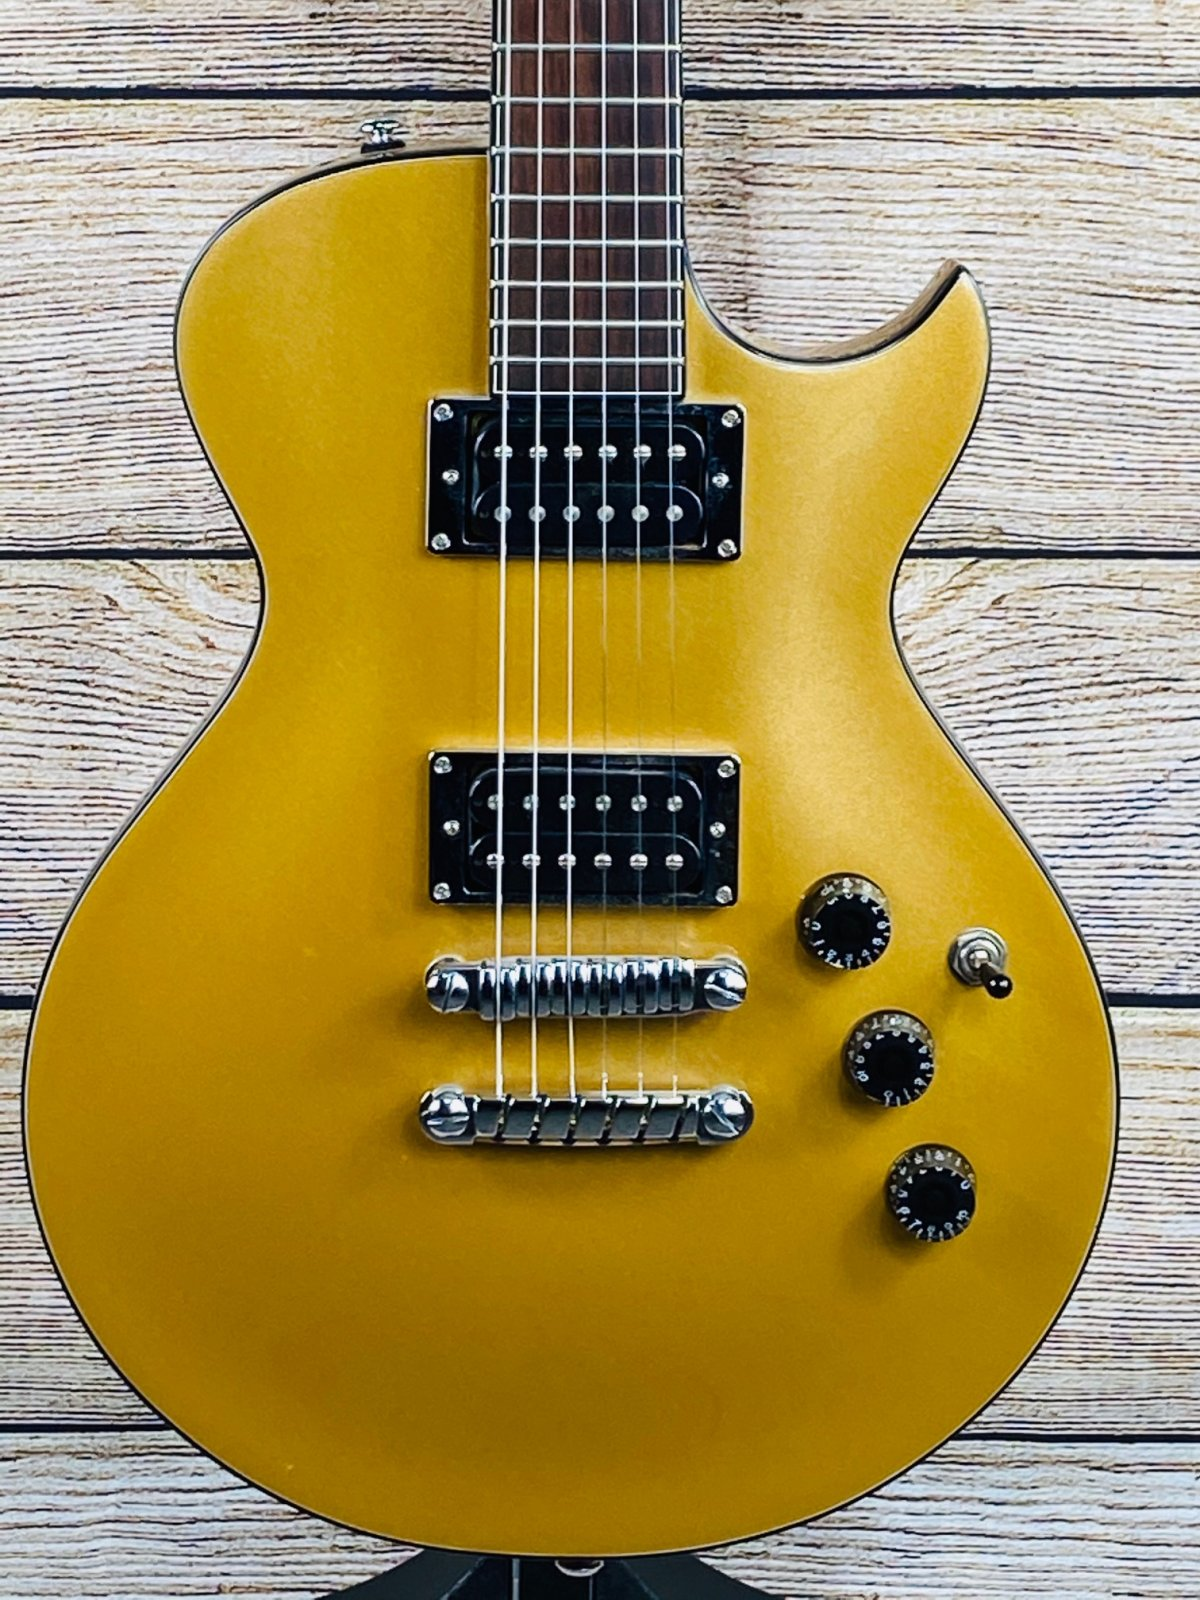 Used Ibanez Les Paul Style Electric Guitar w/case